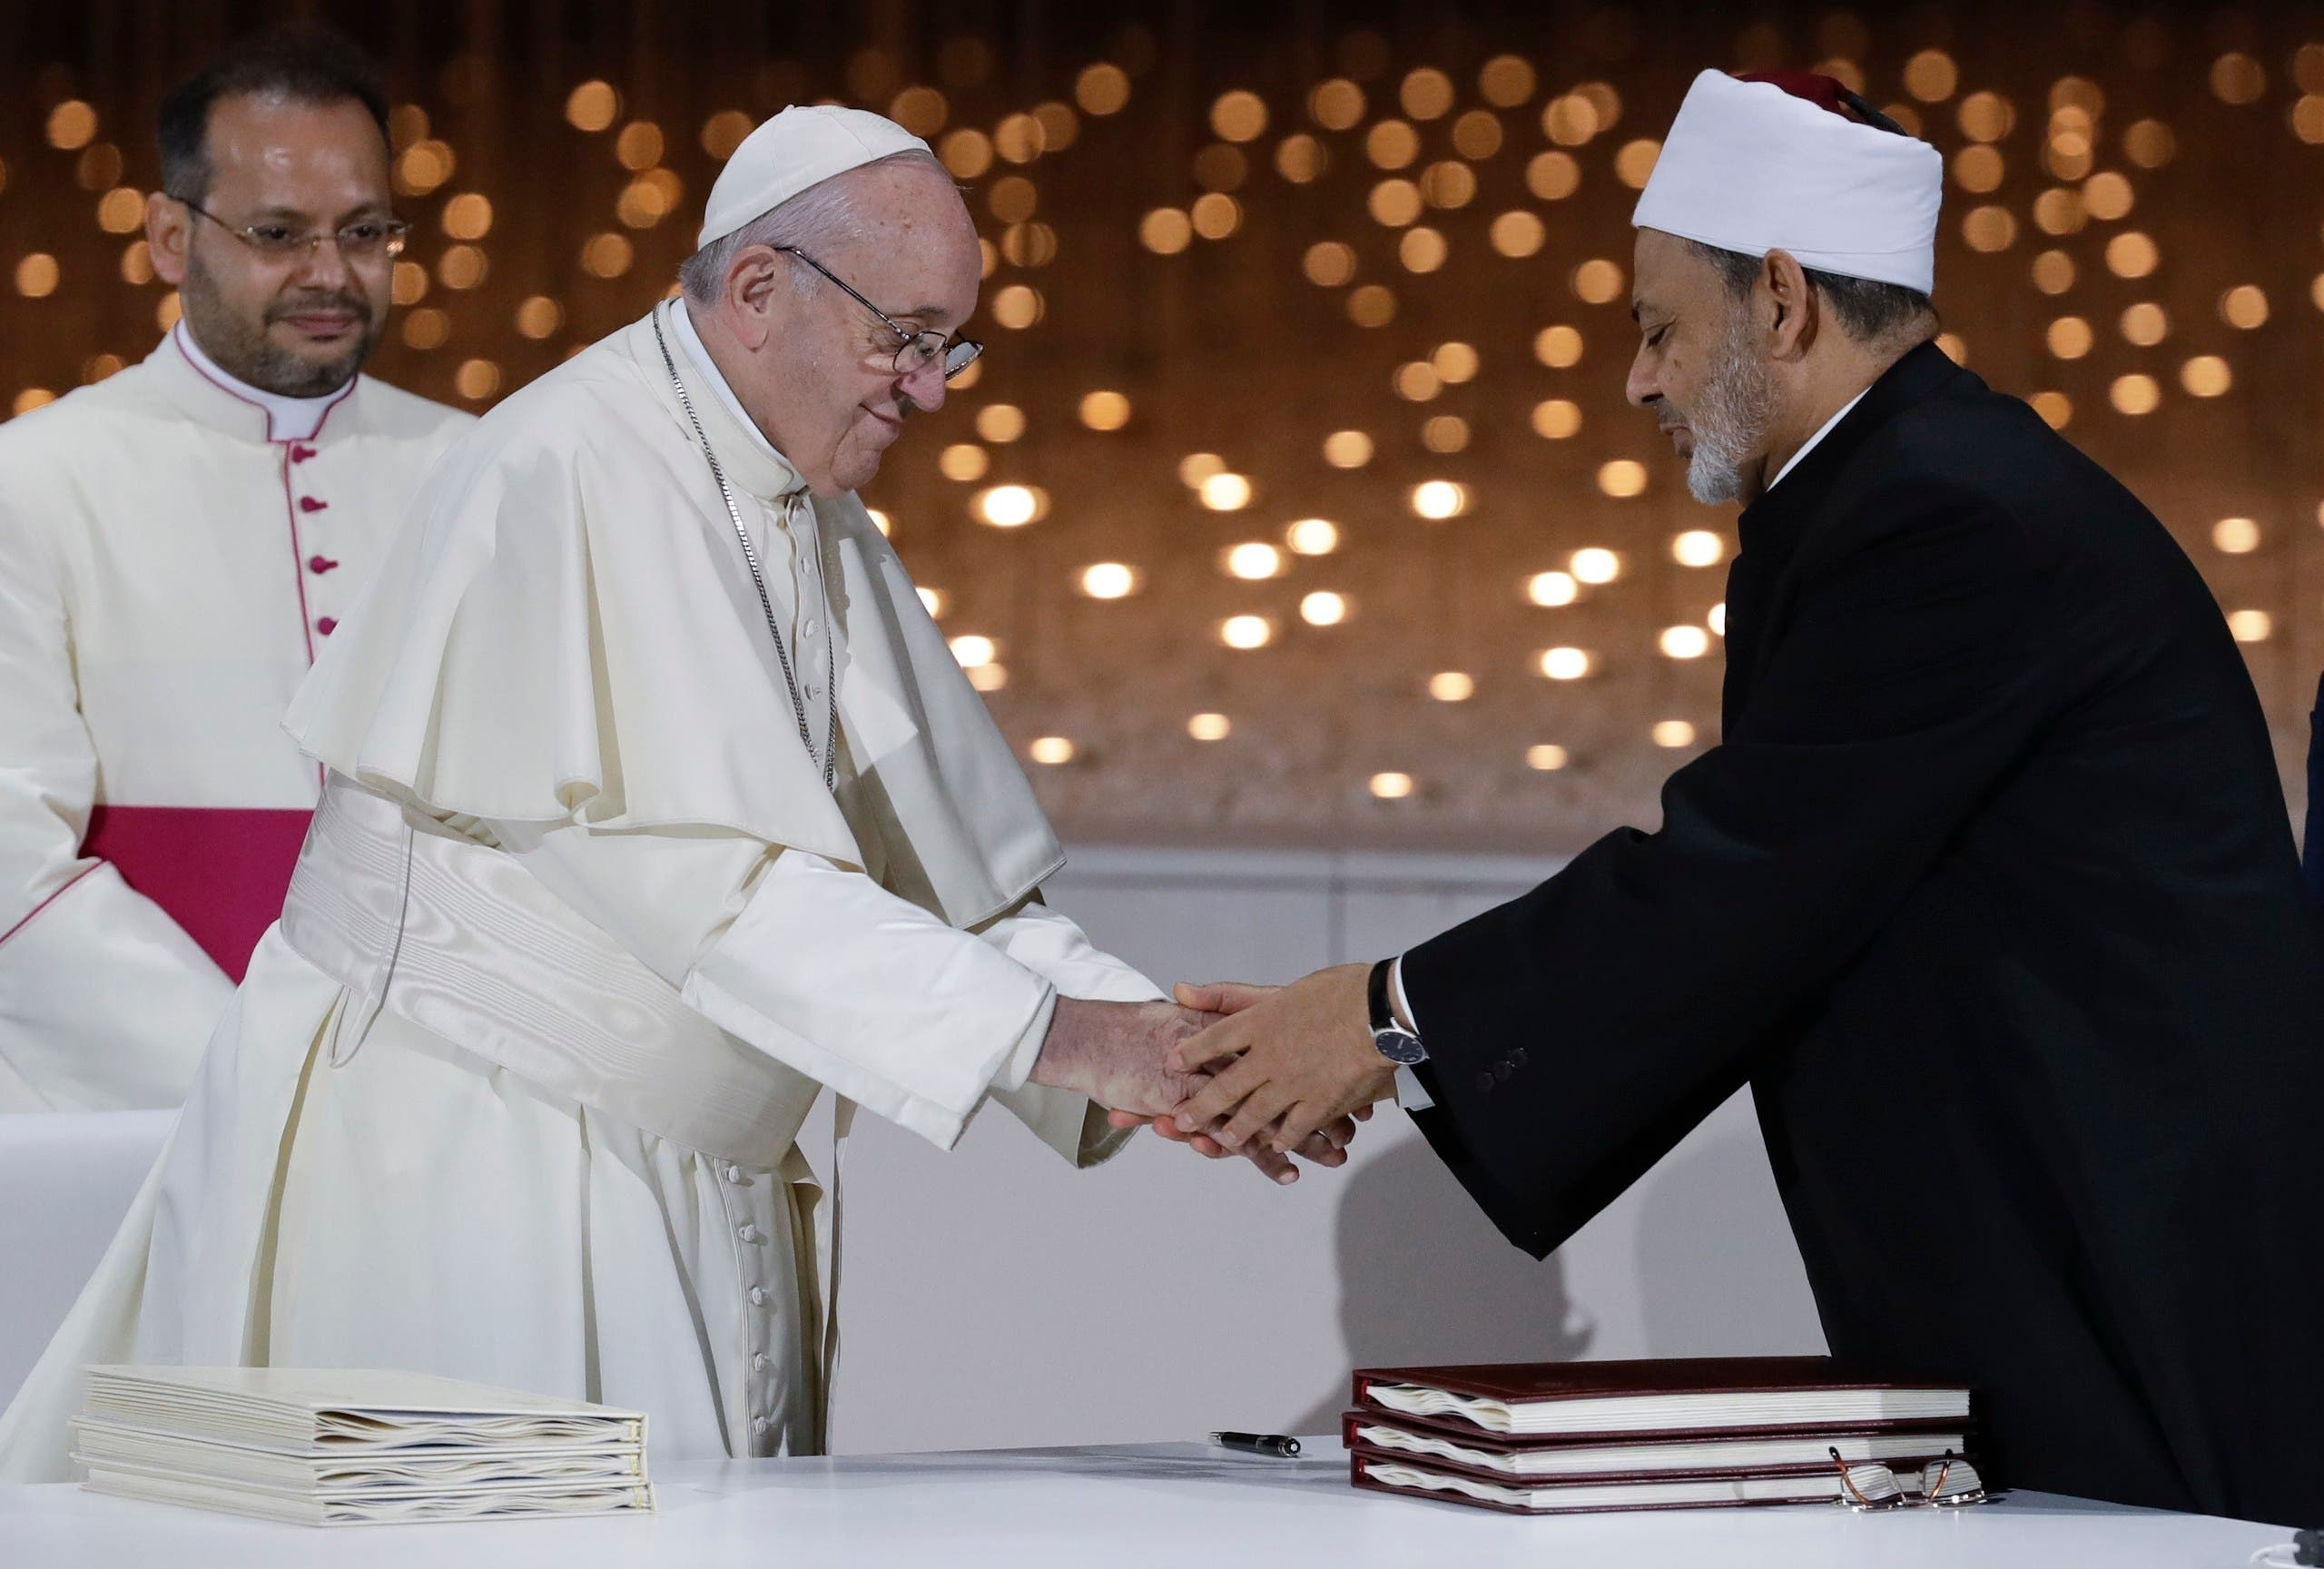 Pope Francis greets Sheikh Ahmed el-Tayeb, the grand imam of Egypt's Al-Azhar, in Abu Dhabi, United Arab Emirates on Feb. 4, 2019.  (AP)